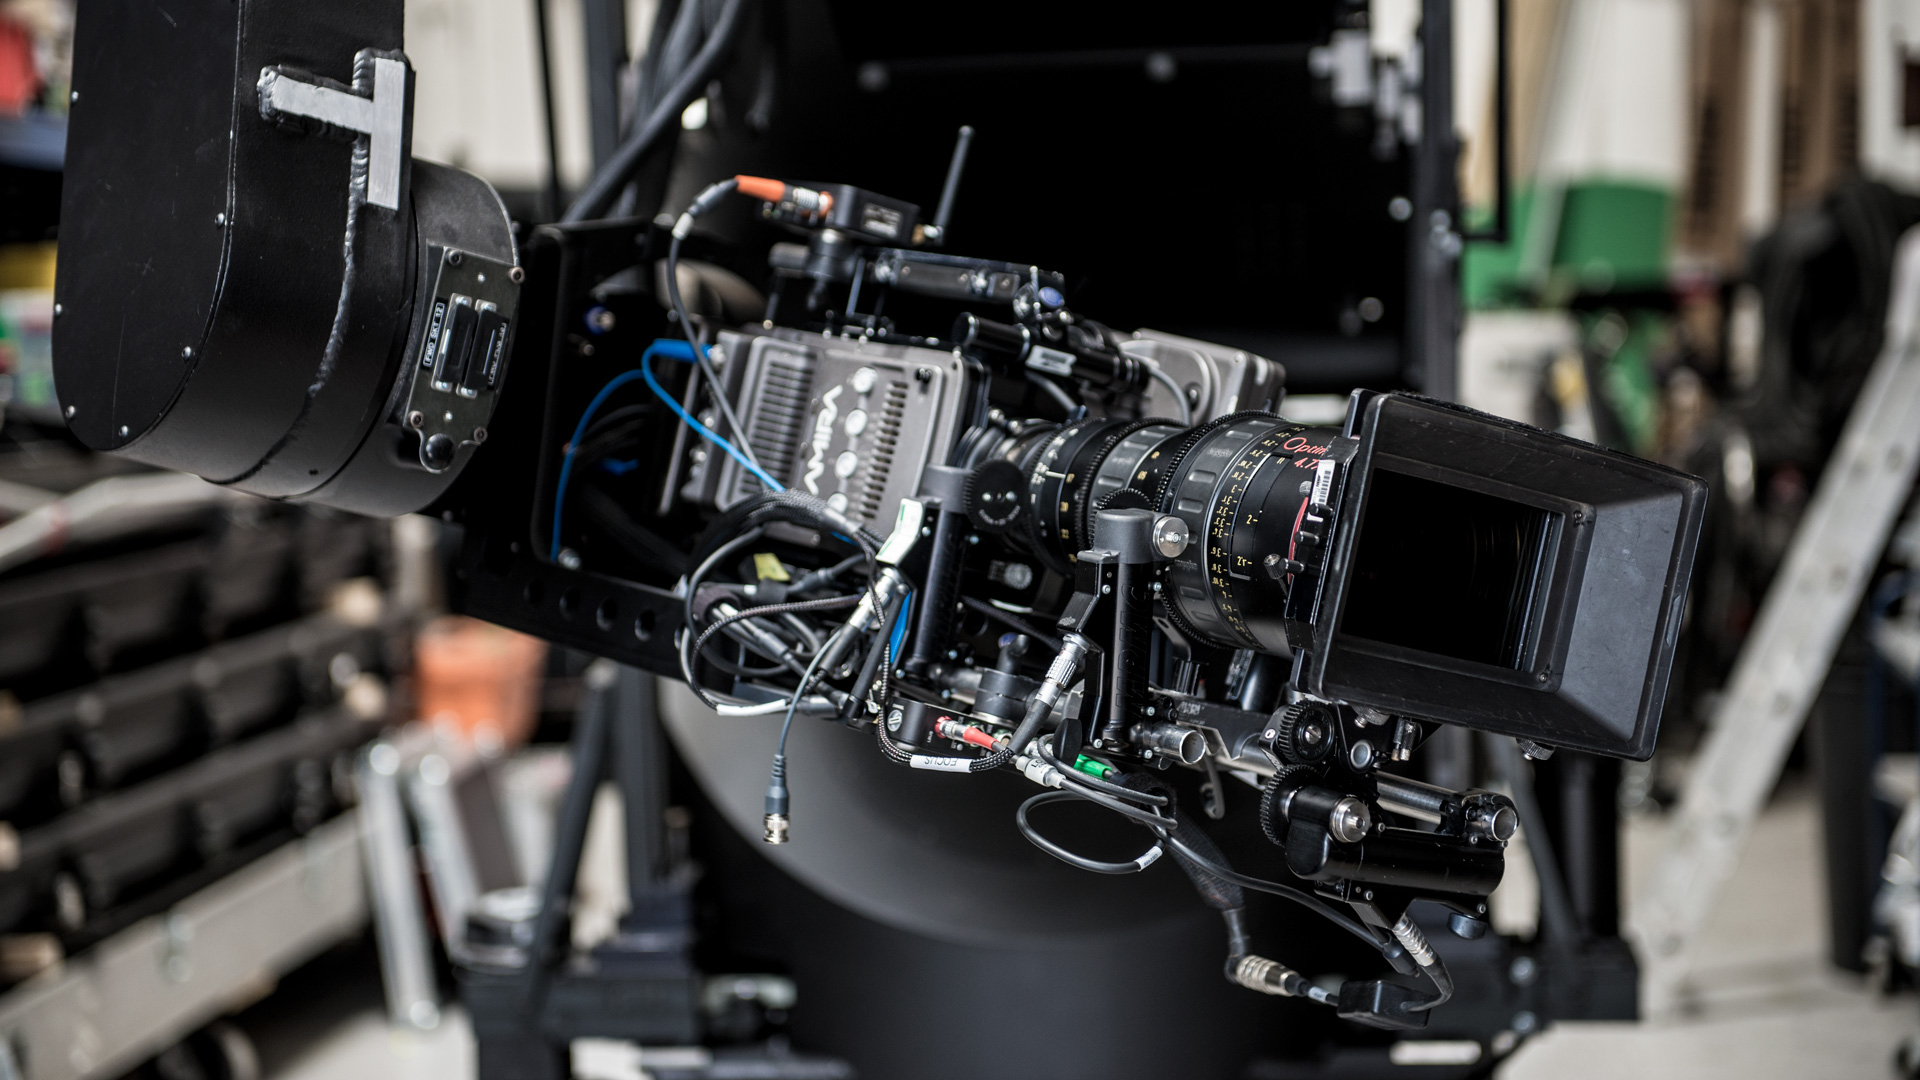 Cinefade system on Milo Motion Control rig